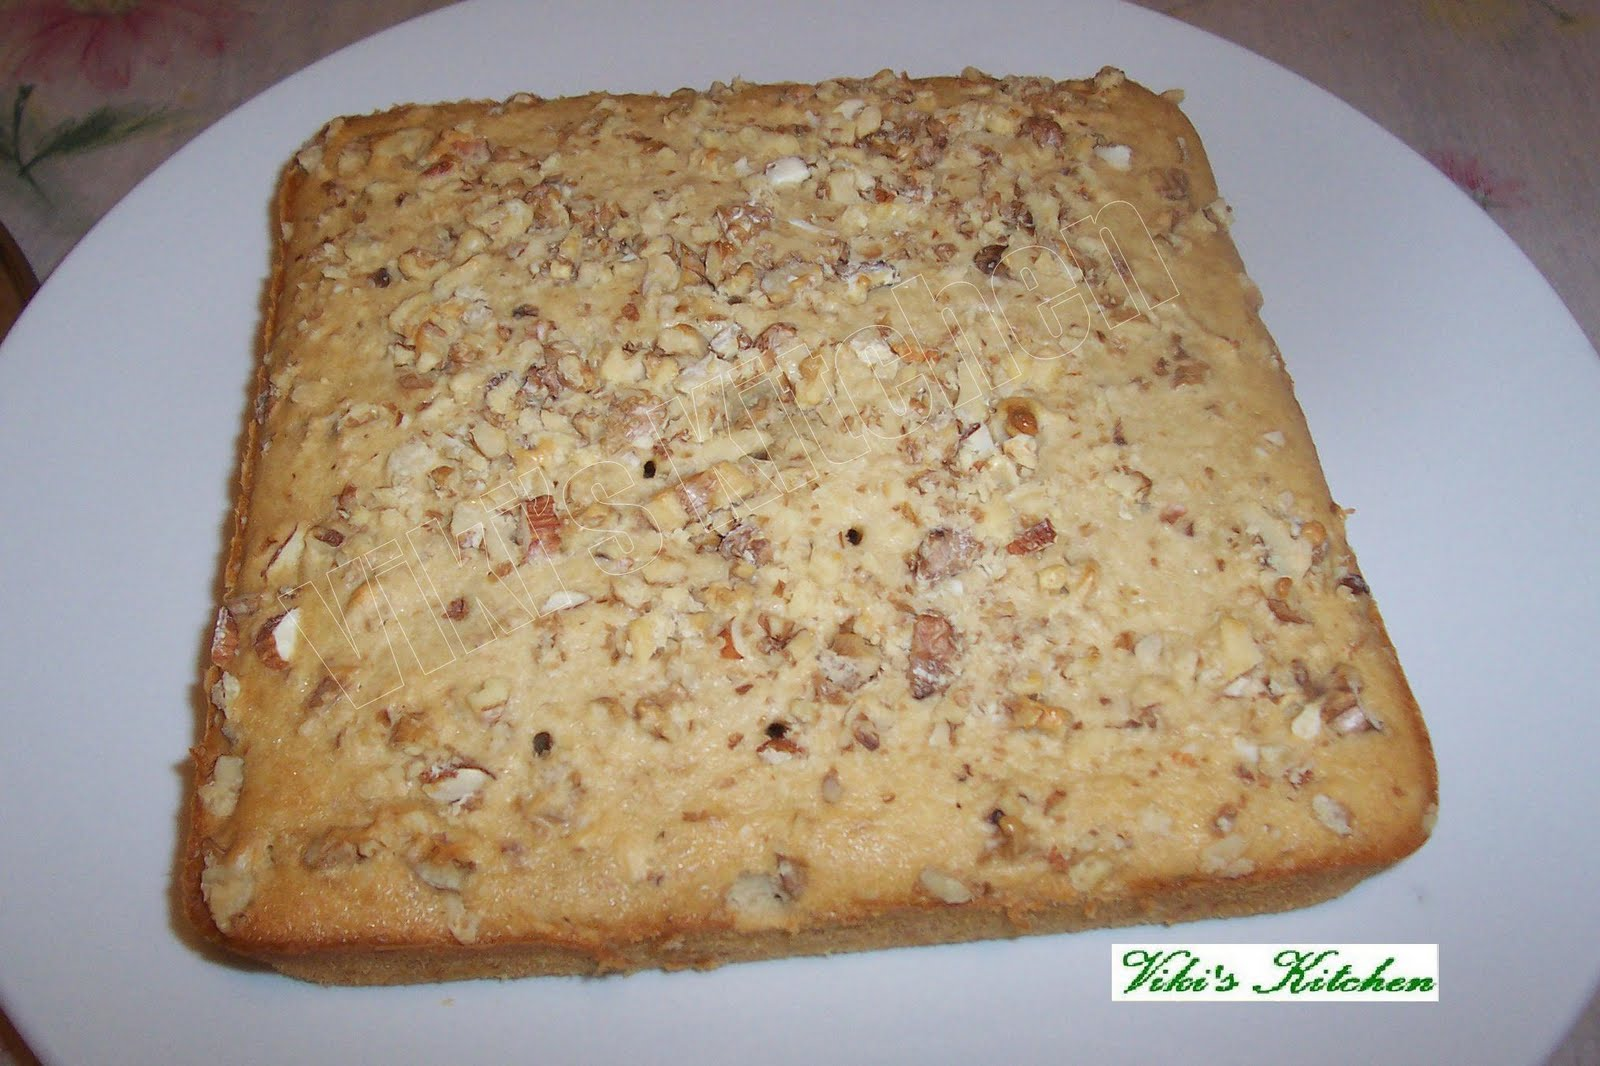 Banana Walnut Cake Recipe Joy Of Baking: Viki 's Kitchen: Banana Walnut Cake